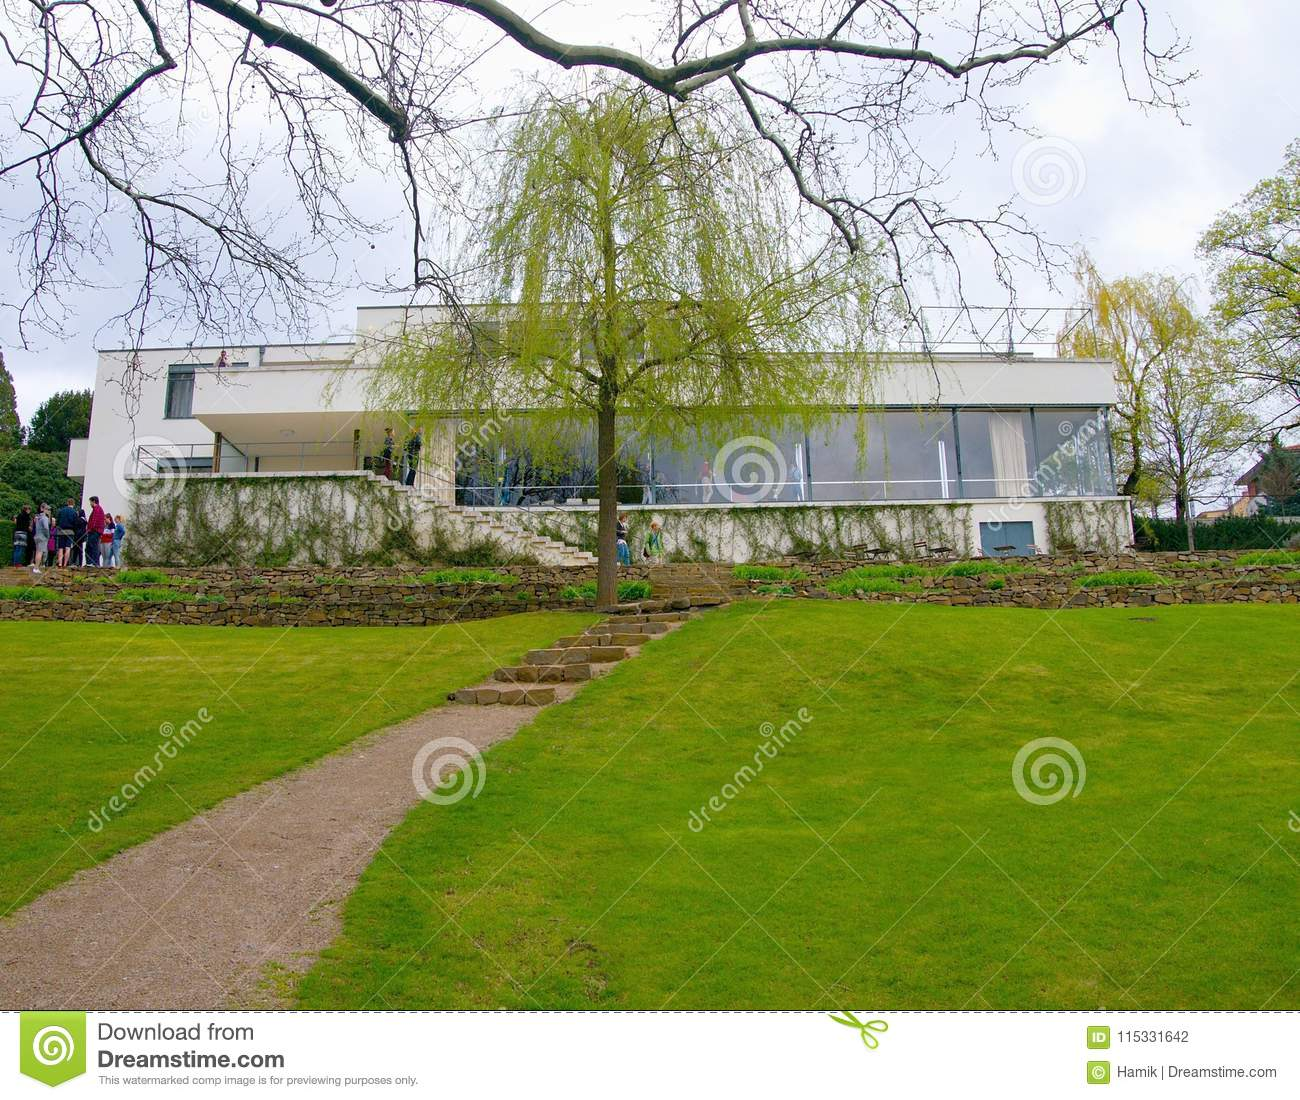 Villa Tugendhat Villa Tugendhat Editorial Photography Image Of Modern 115331642